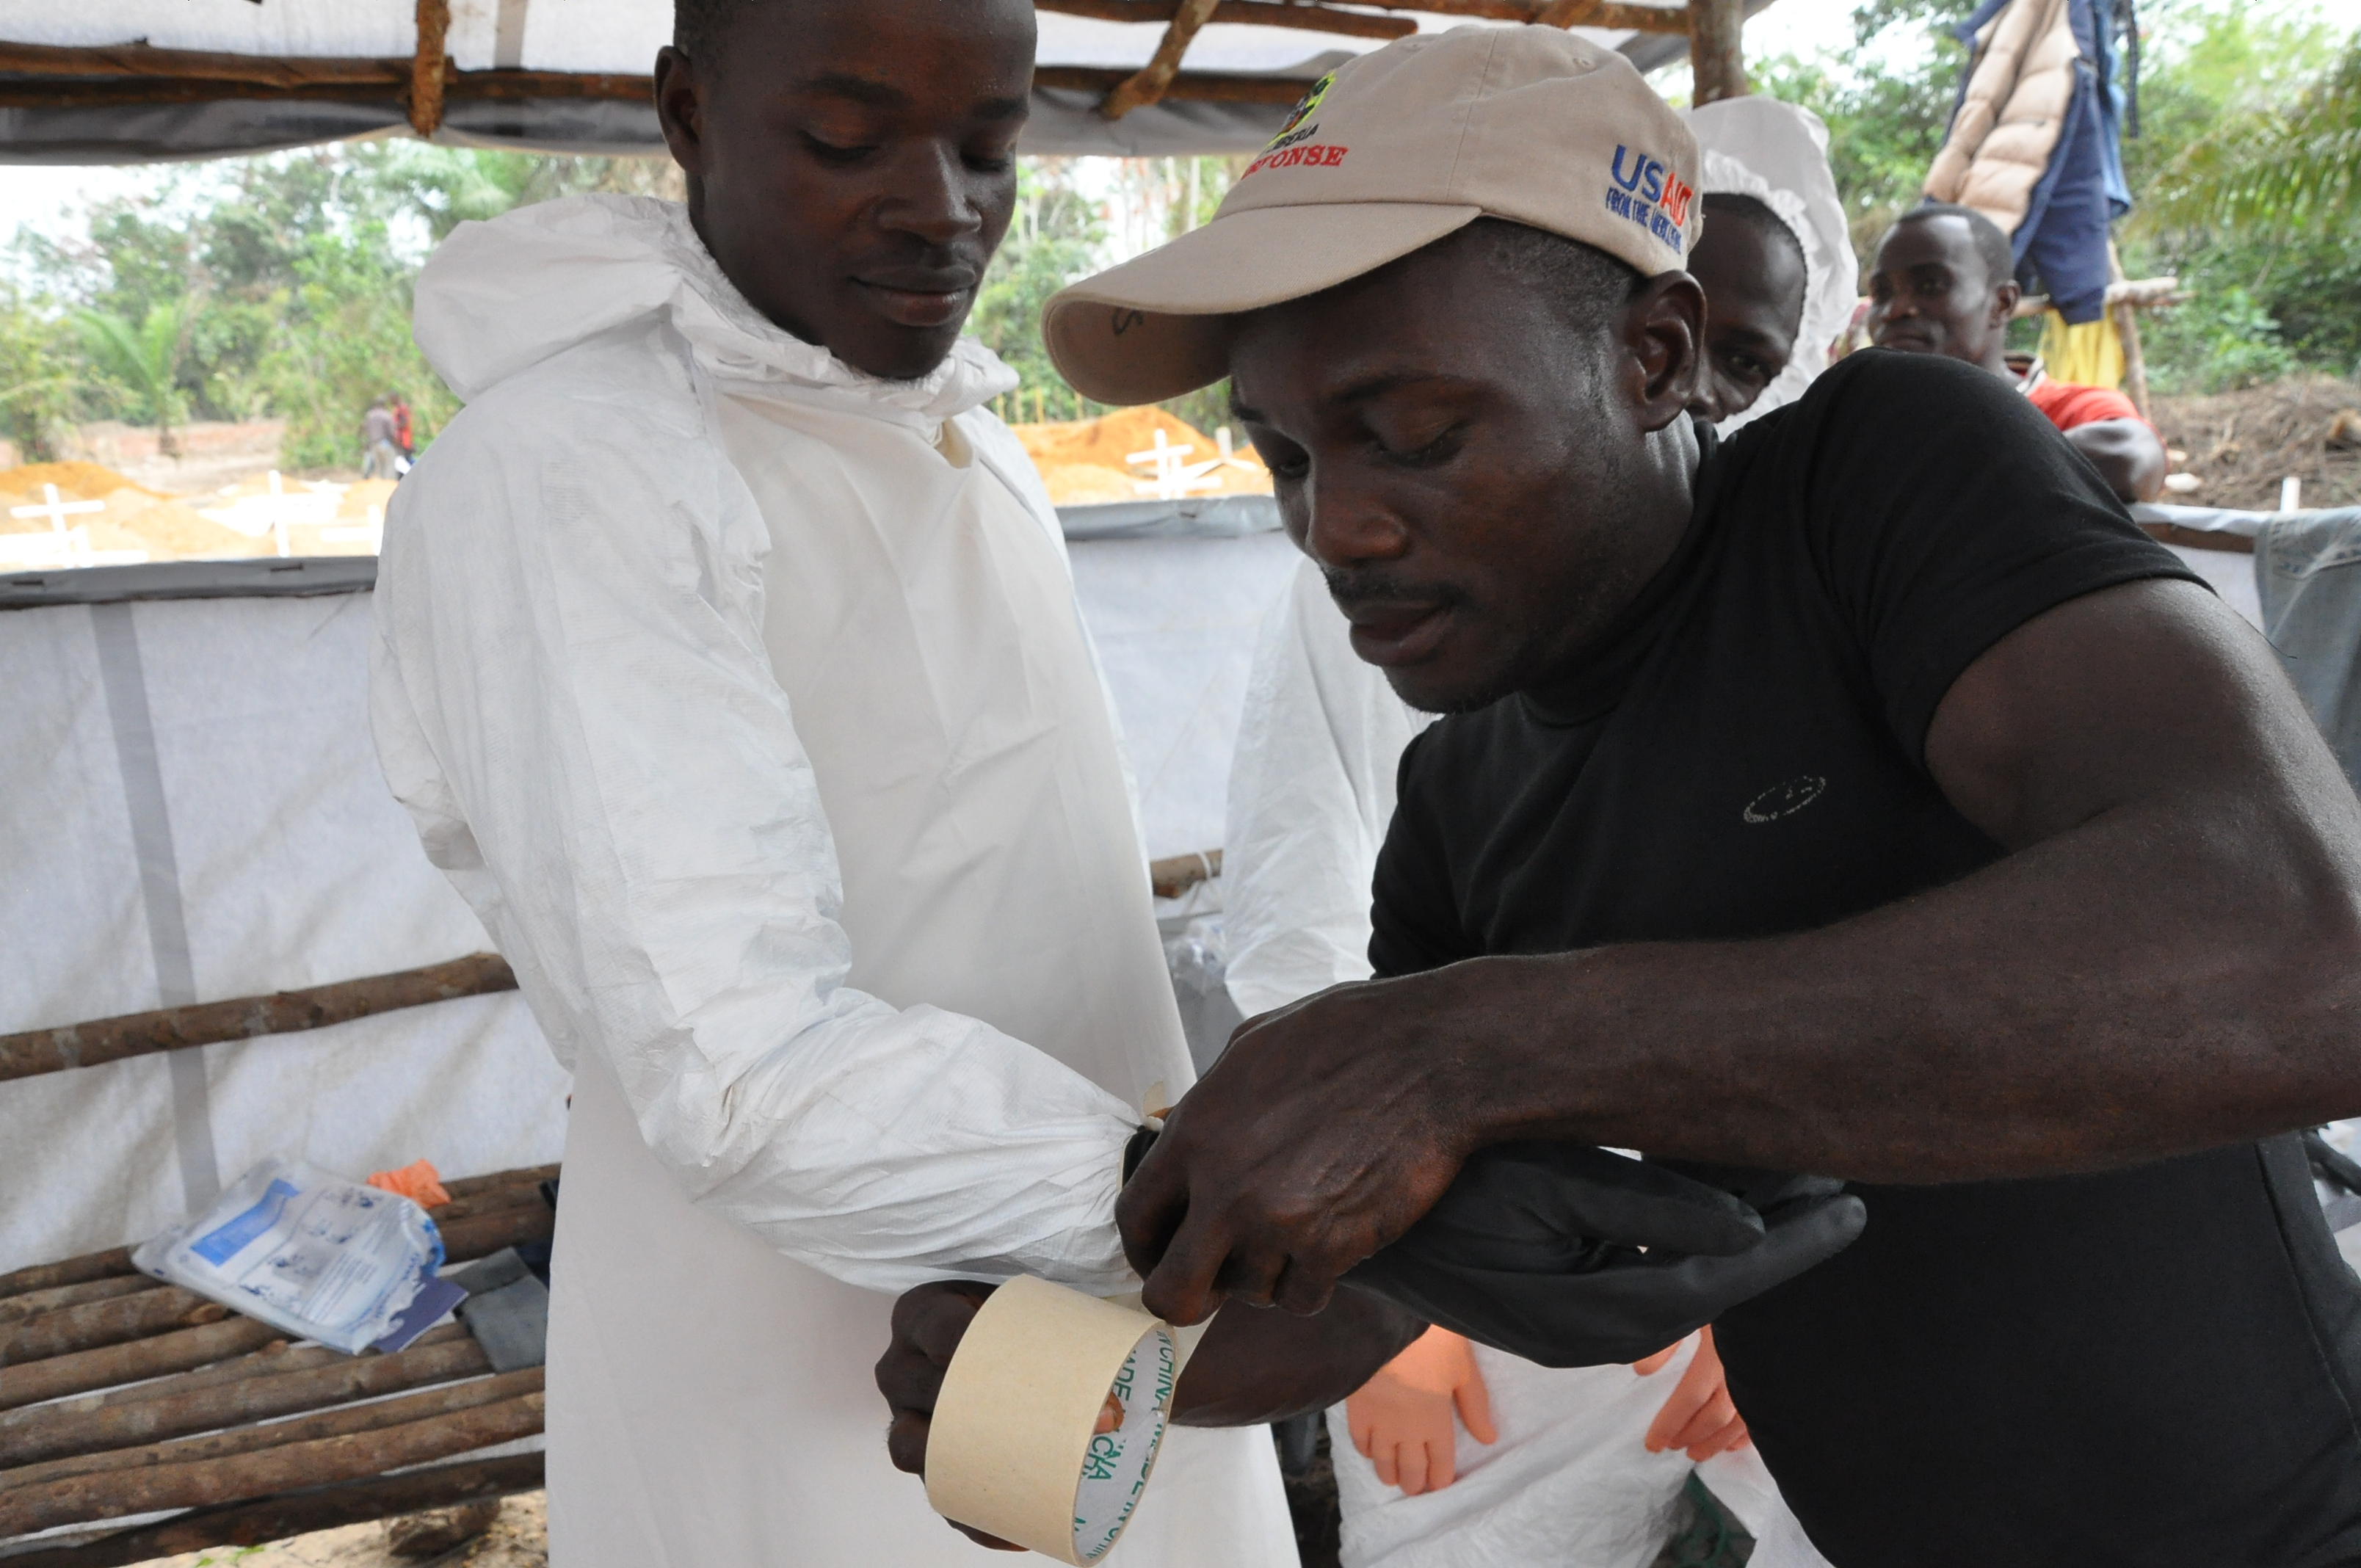 The gloves of the burial team members are taped to the overhaul suits to make sure that there are no gaps where the skin can be exposed. (c)UNICEF/Liberia/2015/Ryeng